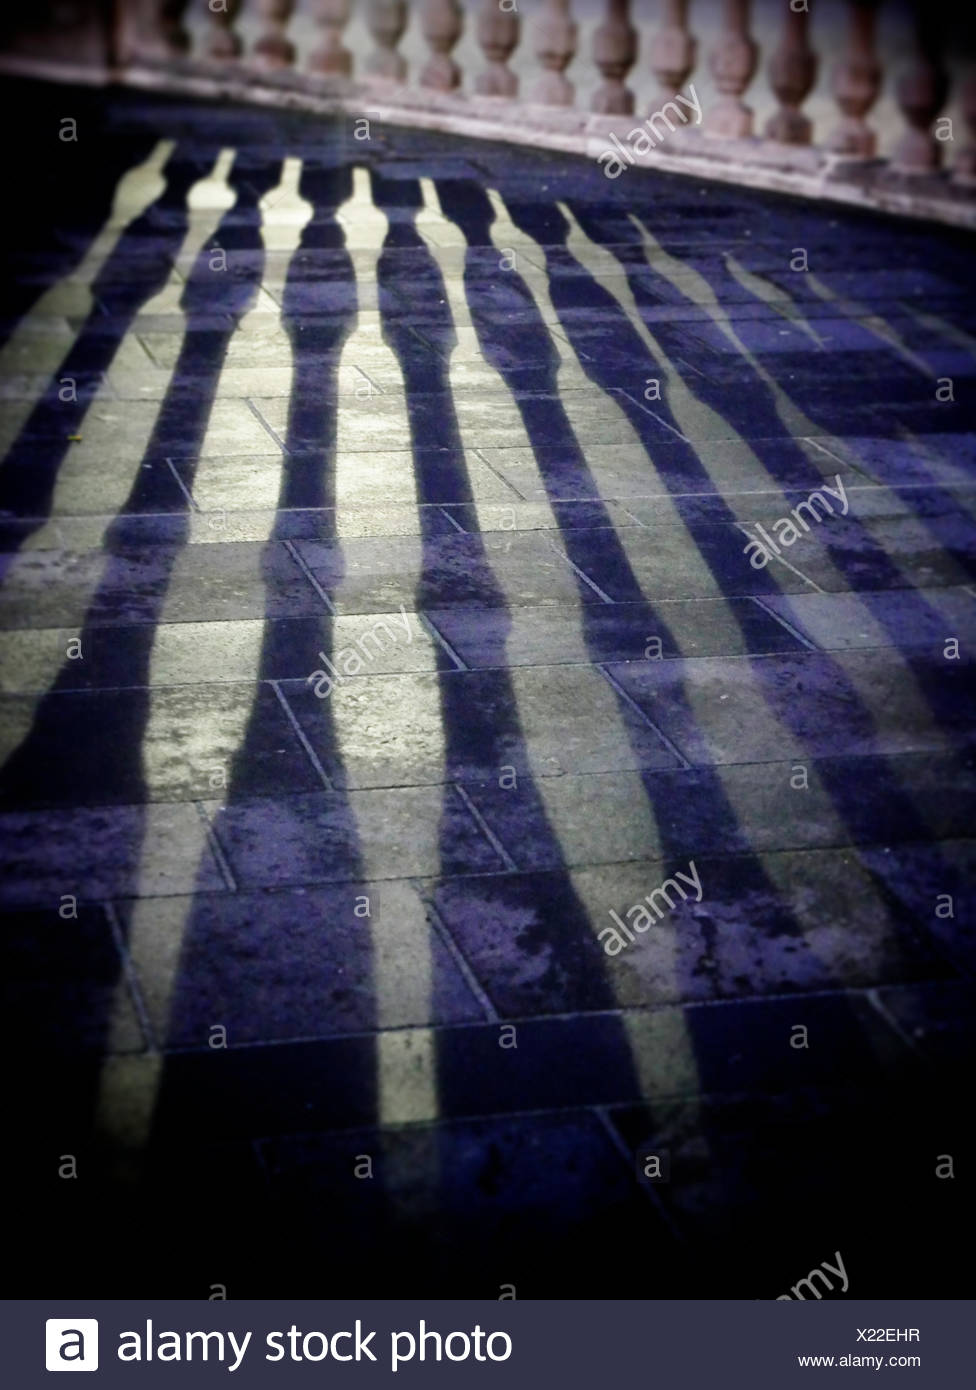 Shadow Of Fence On Floor - Stock Image